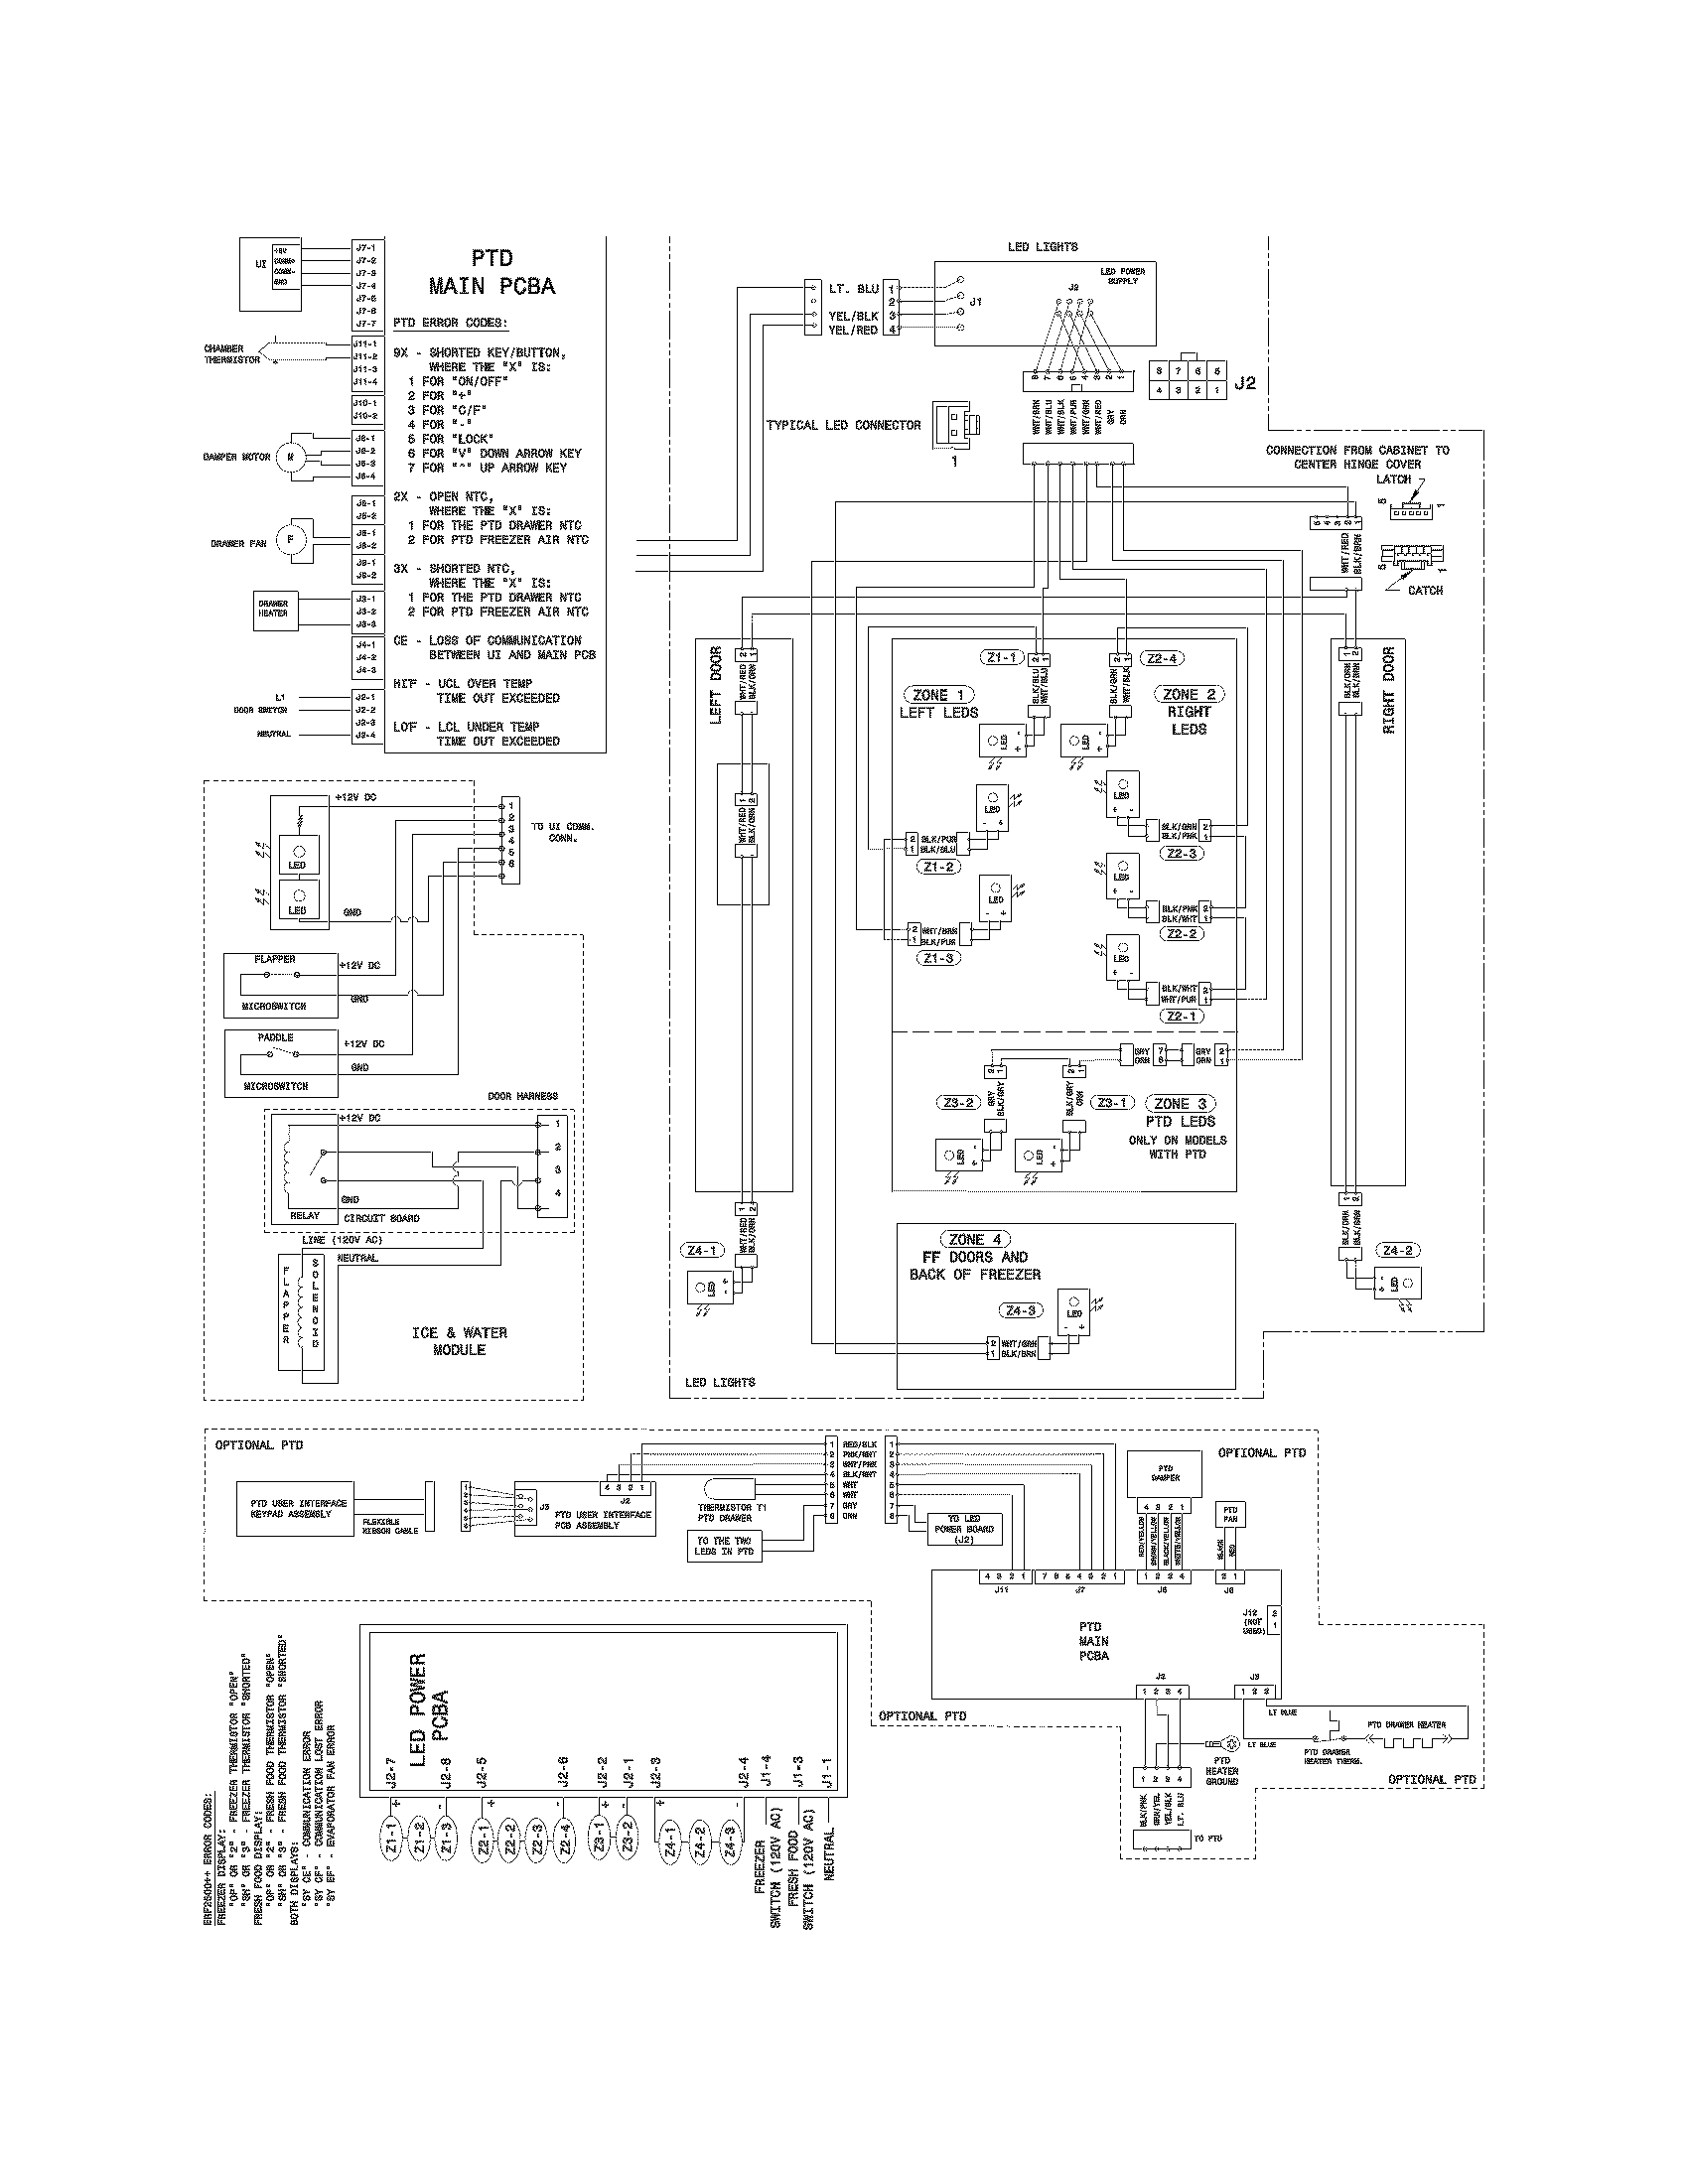 electrolux rm212 wiring diagram mercruiser 4 3 alternator refrigerator schematic library diagra